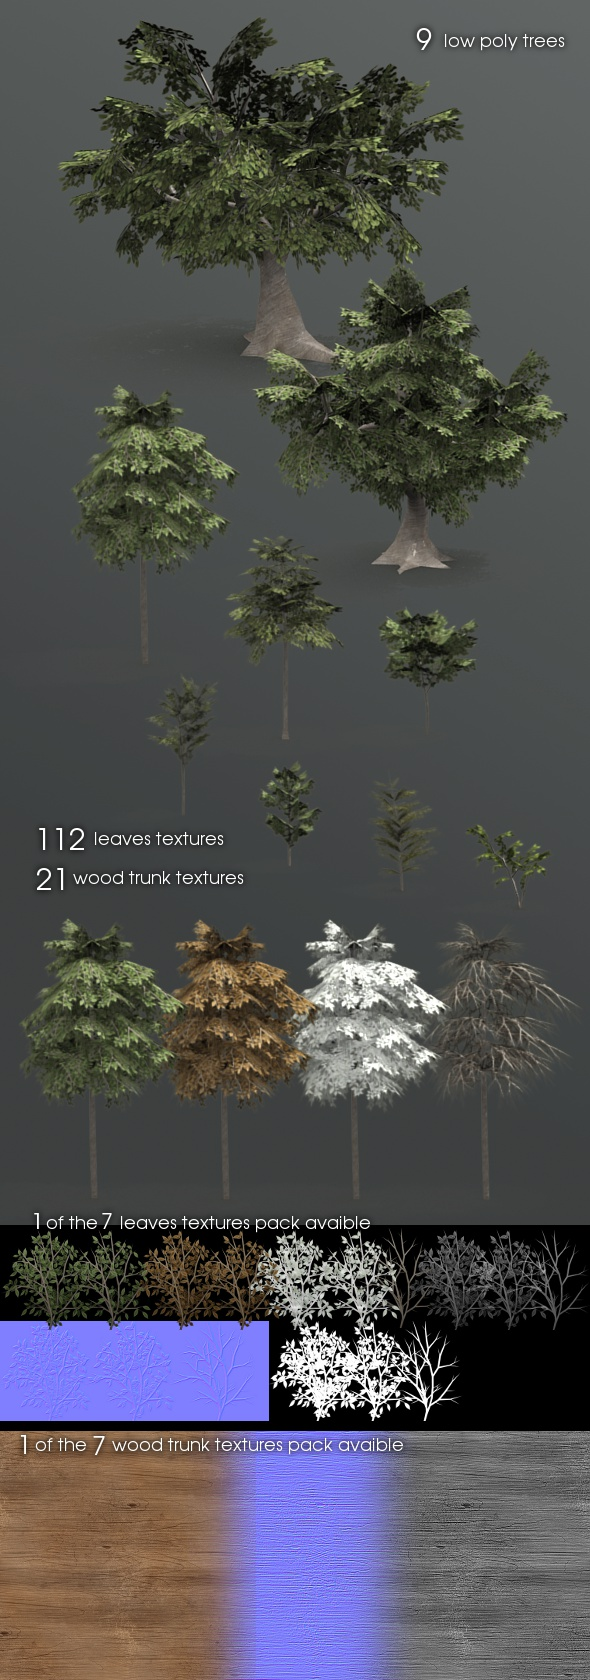 3DOcean 9 forest trees 85041